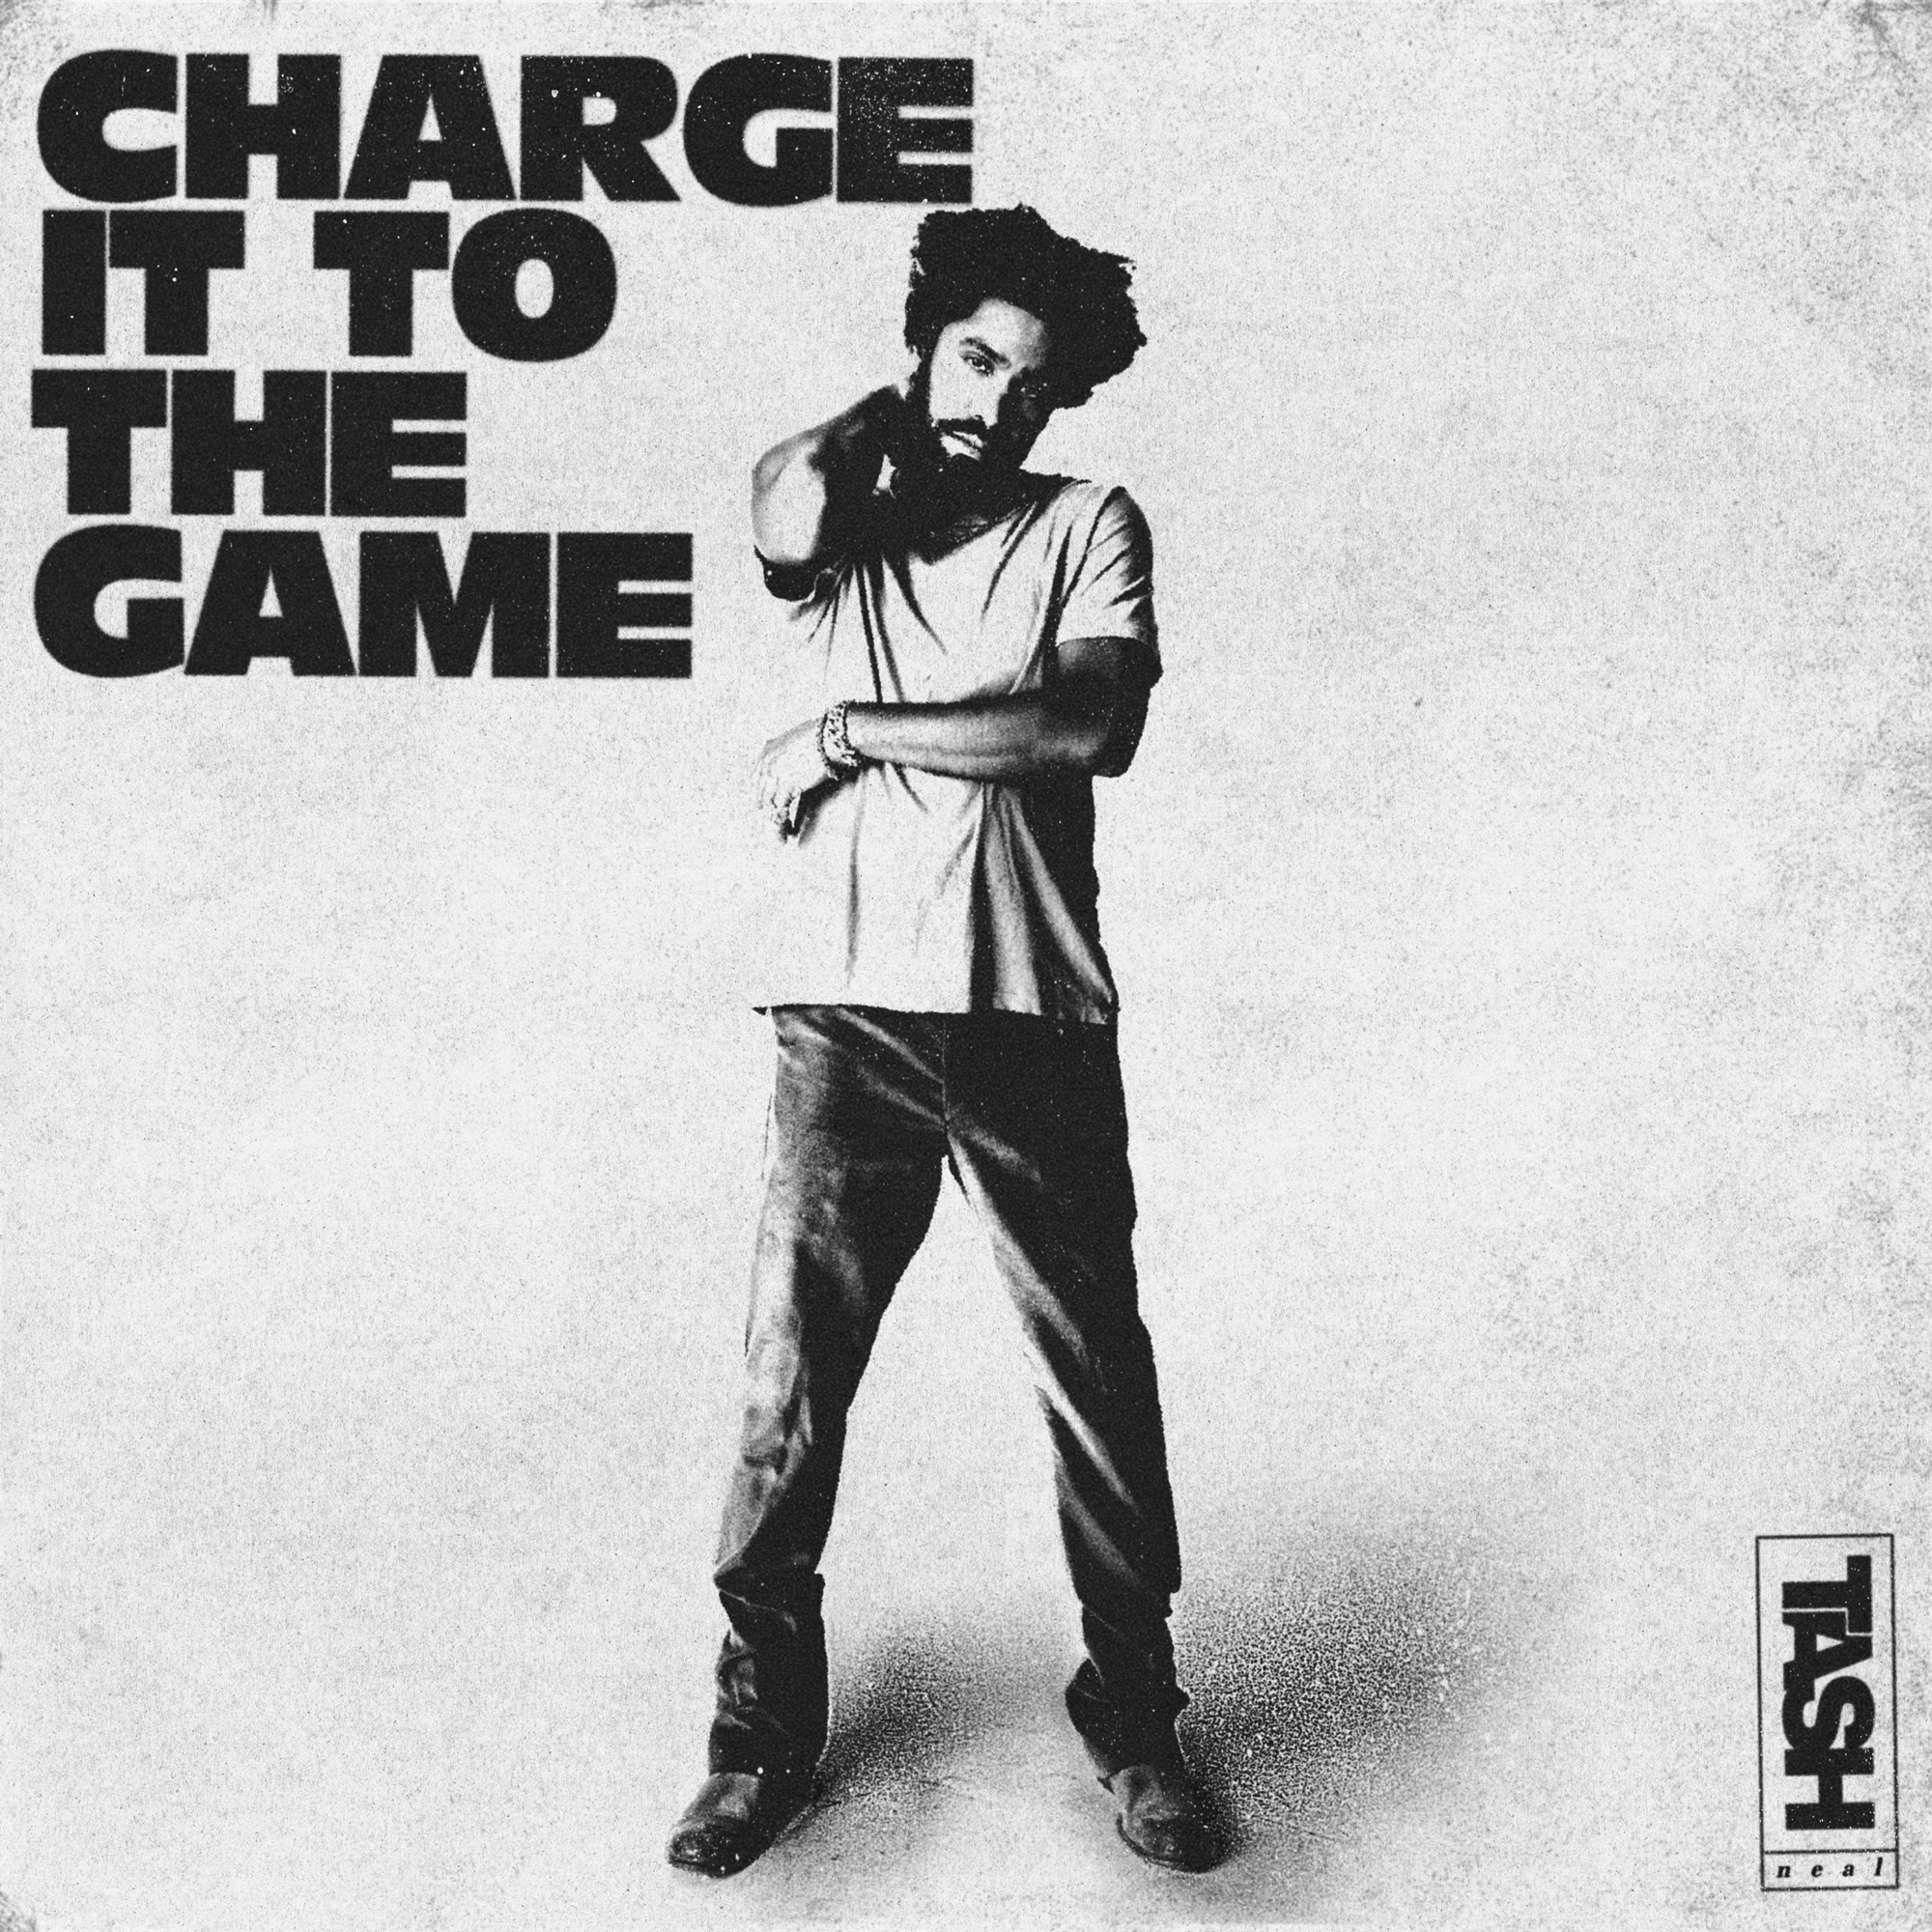 """Album cover for Charge it To the Game by Tash Neal. It's a black and white photo of Tash Neal standing, looking at the camera, with one hand behind his neck and the other across his torso. He's dark-skinned and has a beard. He's wearing a light t-shirt and jeans. In the top left corner reads """"Charge it To the Game"""" in black letters, and in the bottom right corner reads """"Tash Neal."""""""